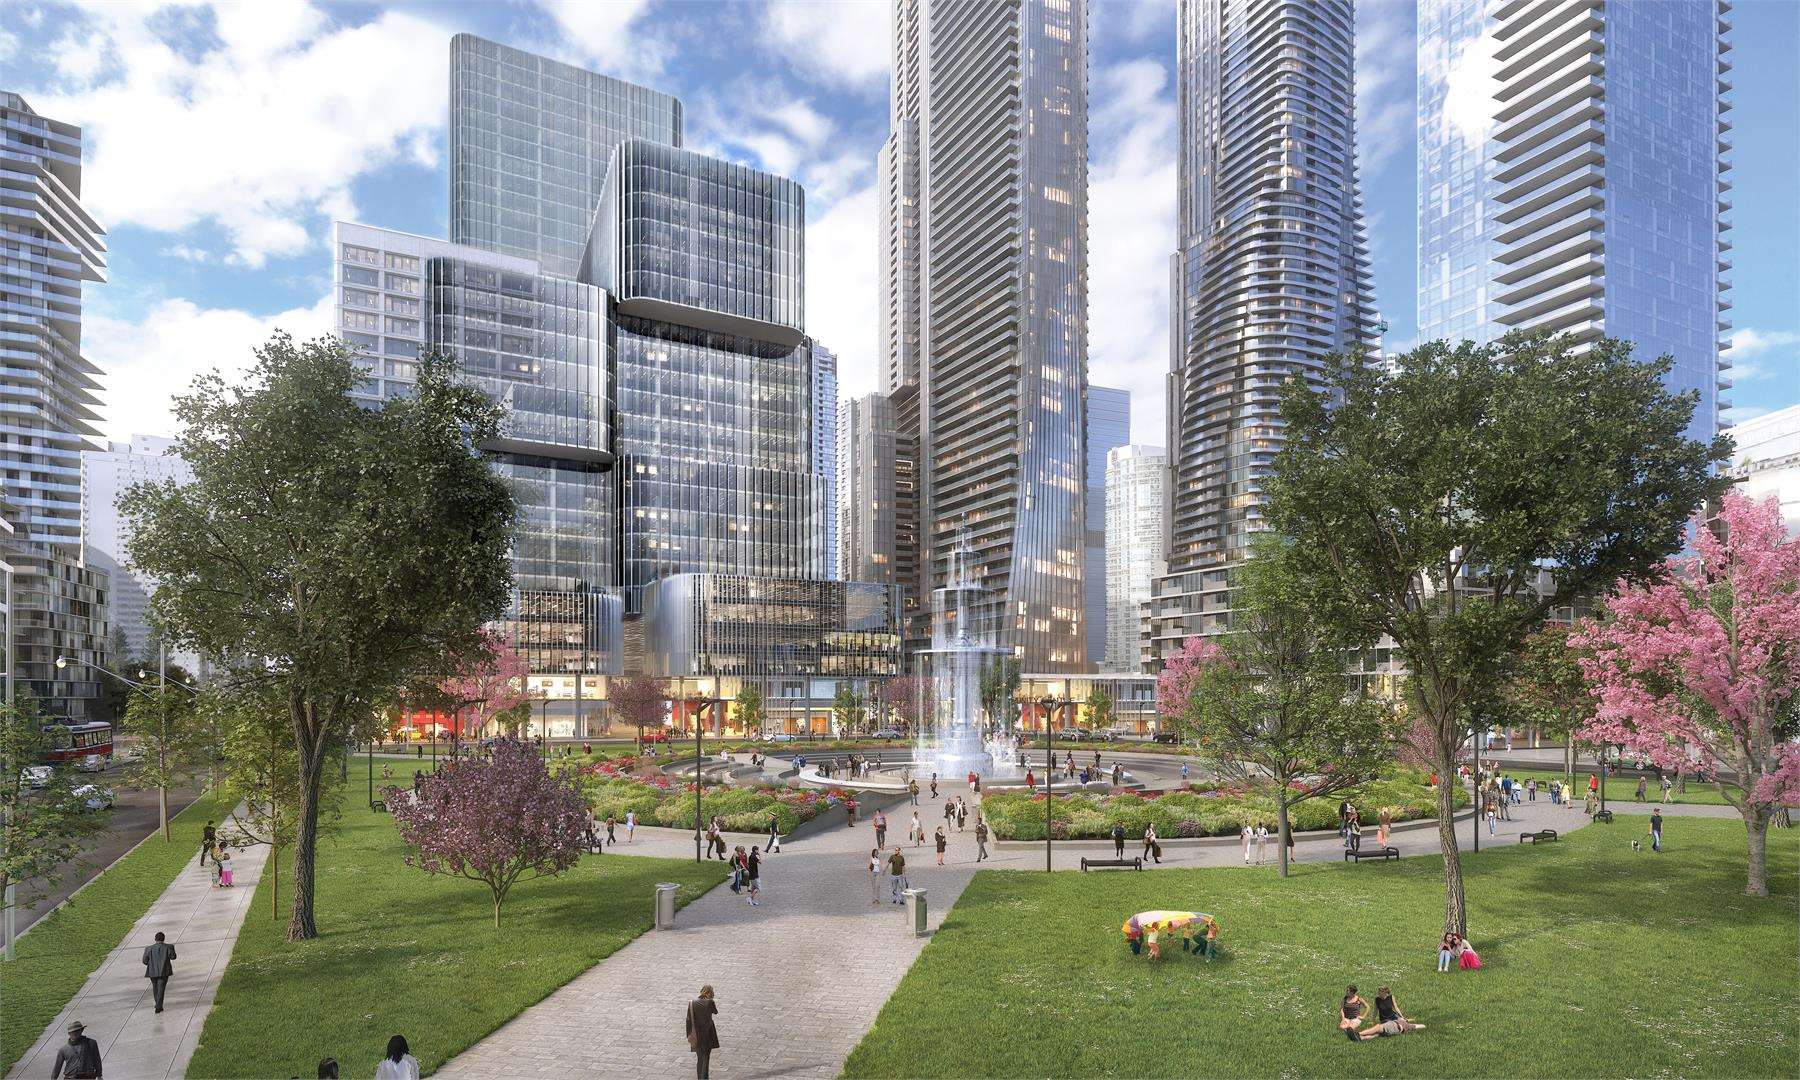 Picture showing outside of 1 Yonge Street and green spaces